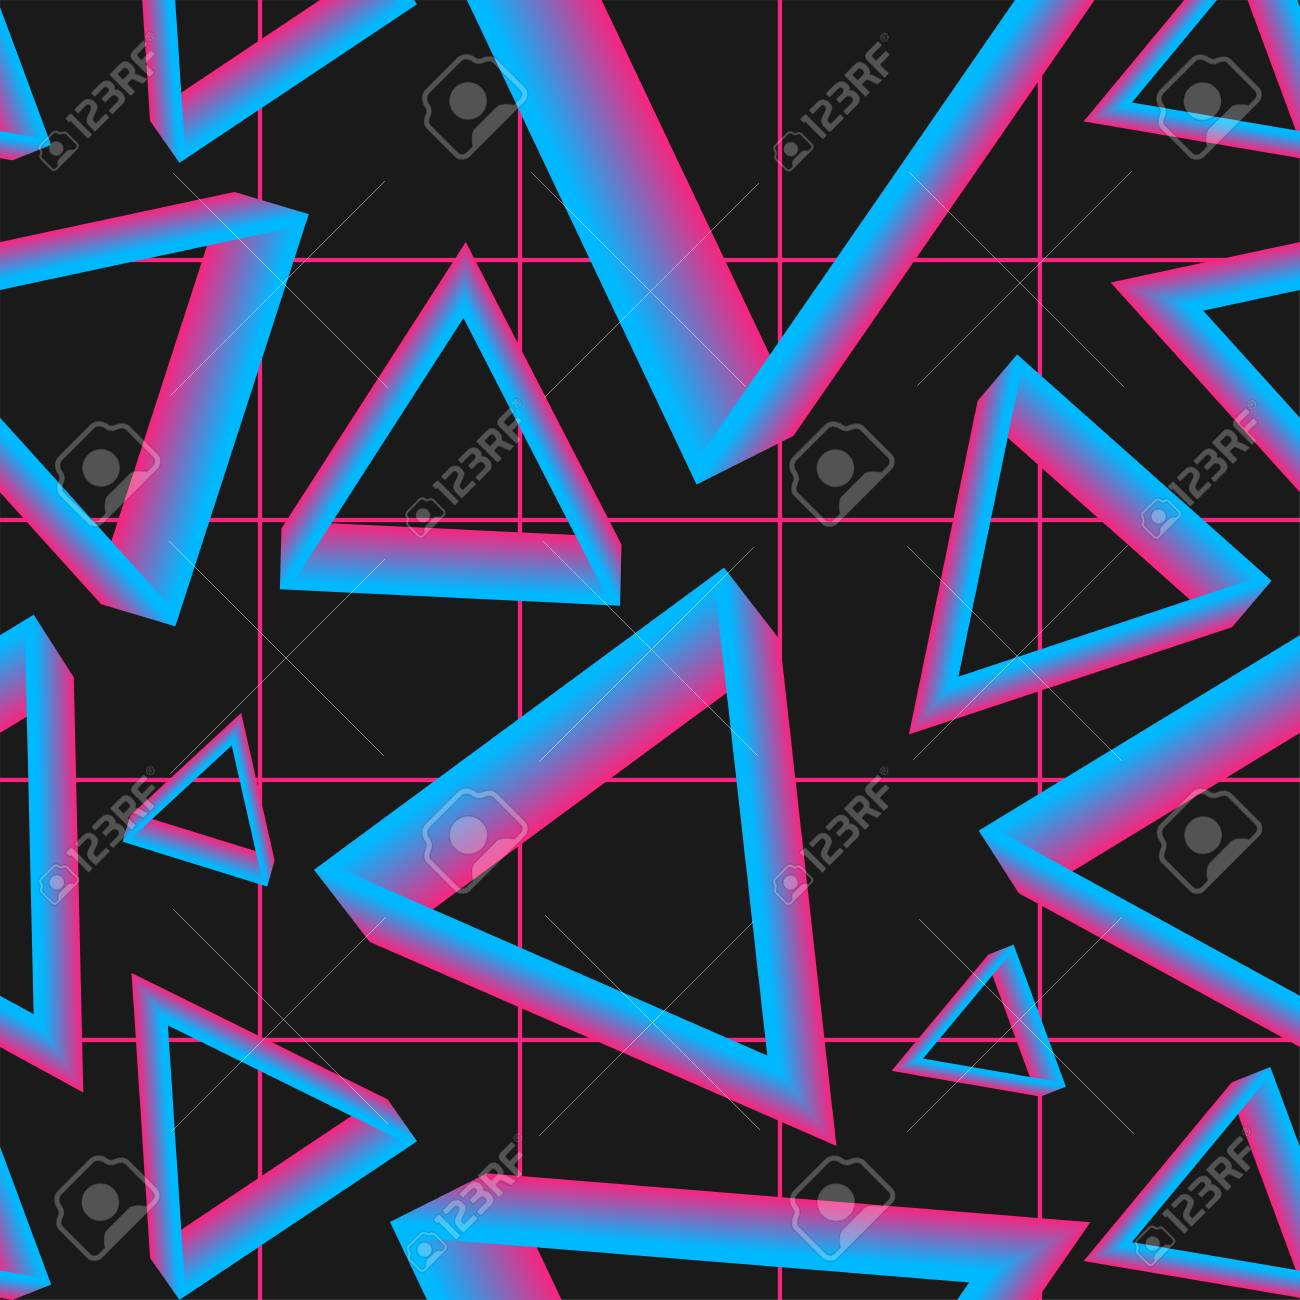 Vaporwave Seamless 80 S Style Pattern With Geometric Shapes Royalty Free Cliparts Vectors And Stock Illustration Image 124618219